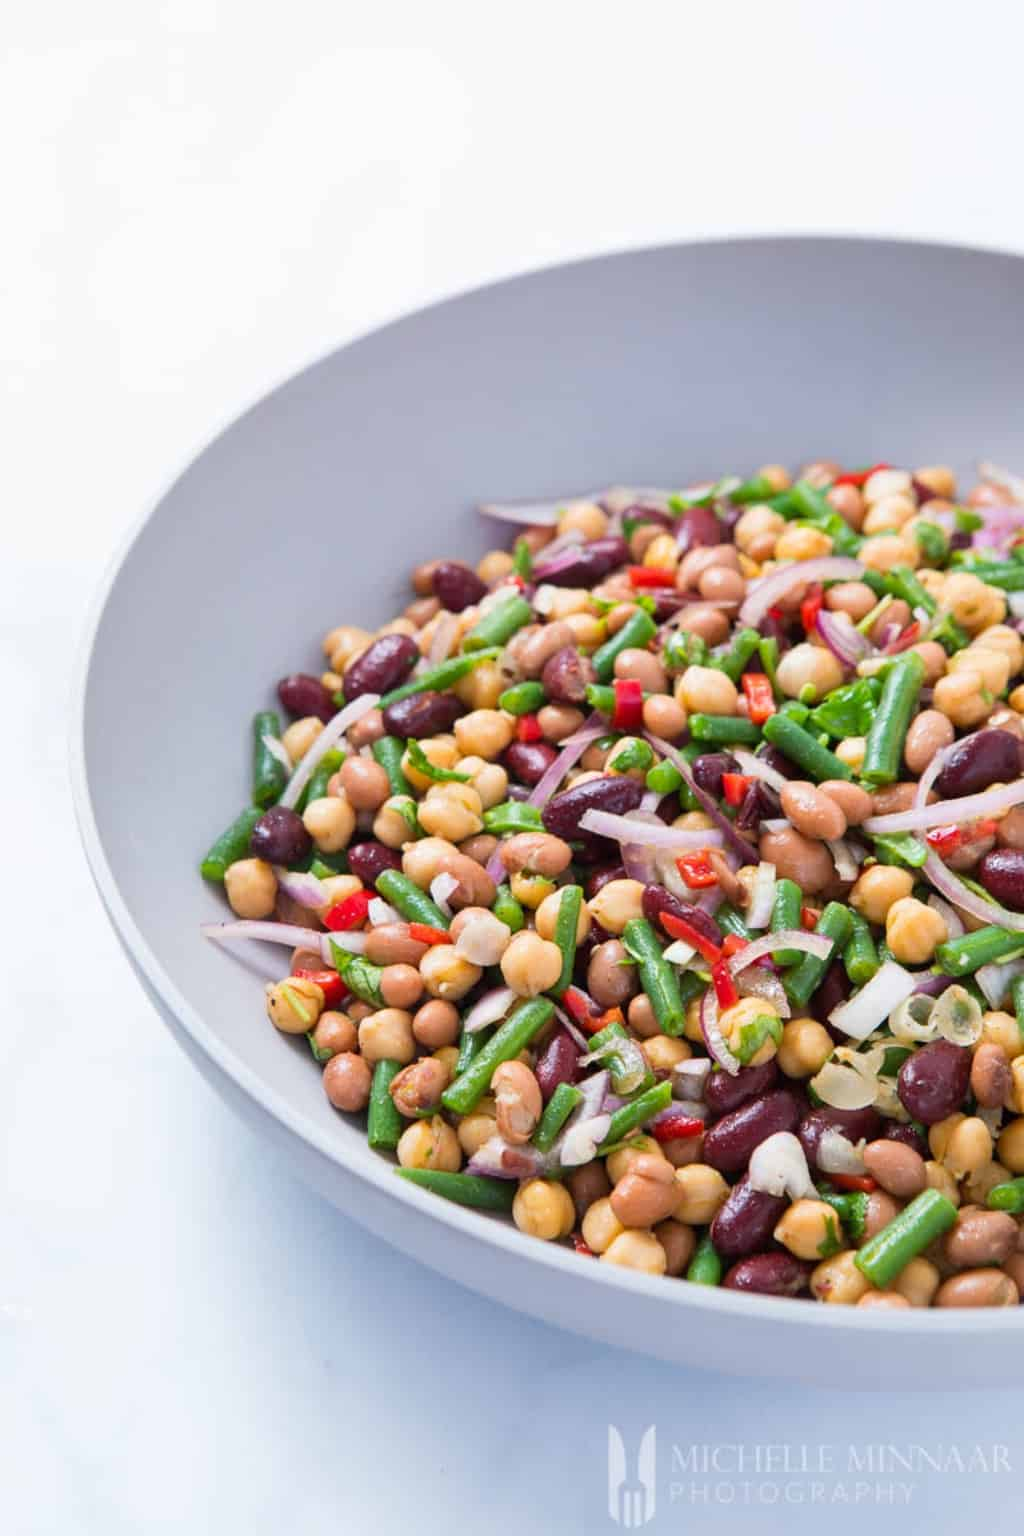 A salad made with 4 kinds of beans